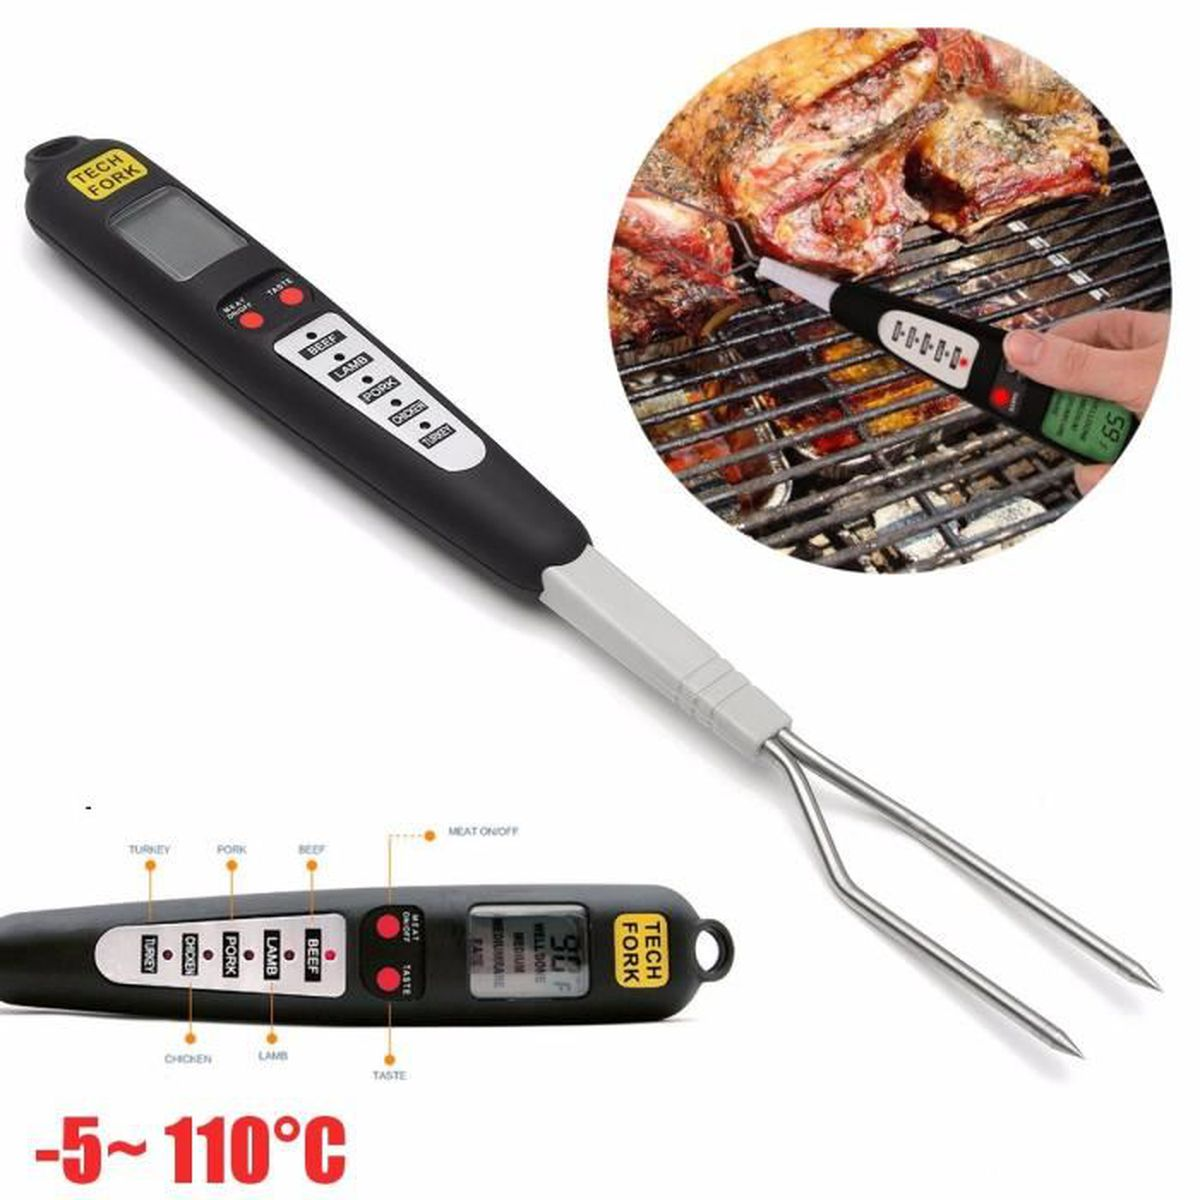 Lcd digital fourchette thermom tre cuisine outil bbq sonde for Thermometre digital cuisine